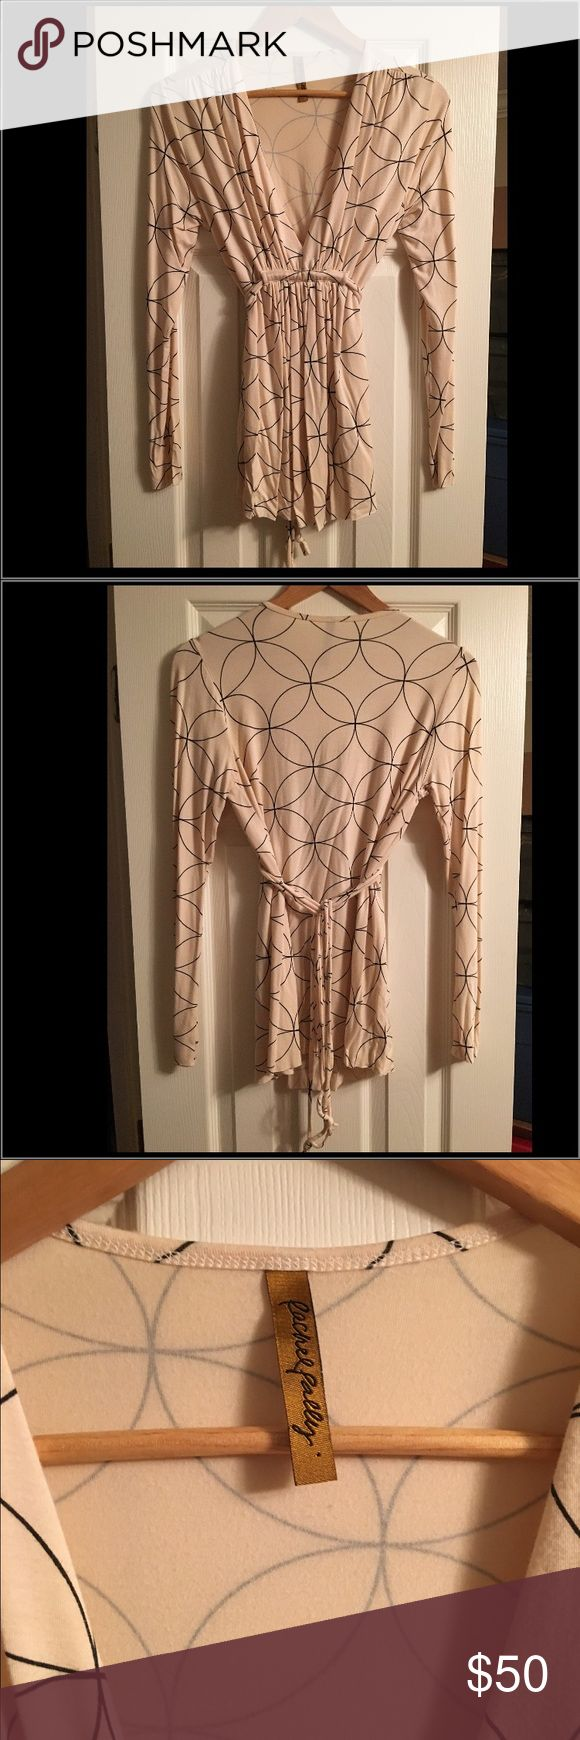 Rachel Pally empire/baby doll top By Rachel Pally. Modal/spandex. Made in USA. Great condition. Rachel Pally Tops Blouses